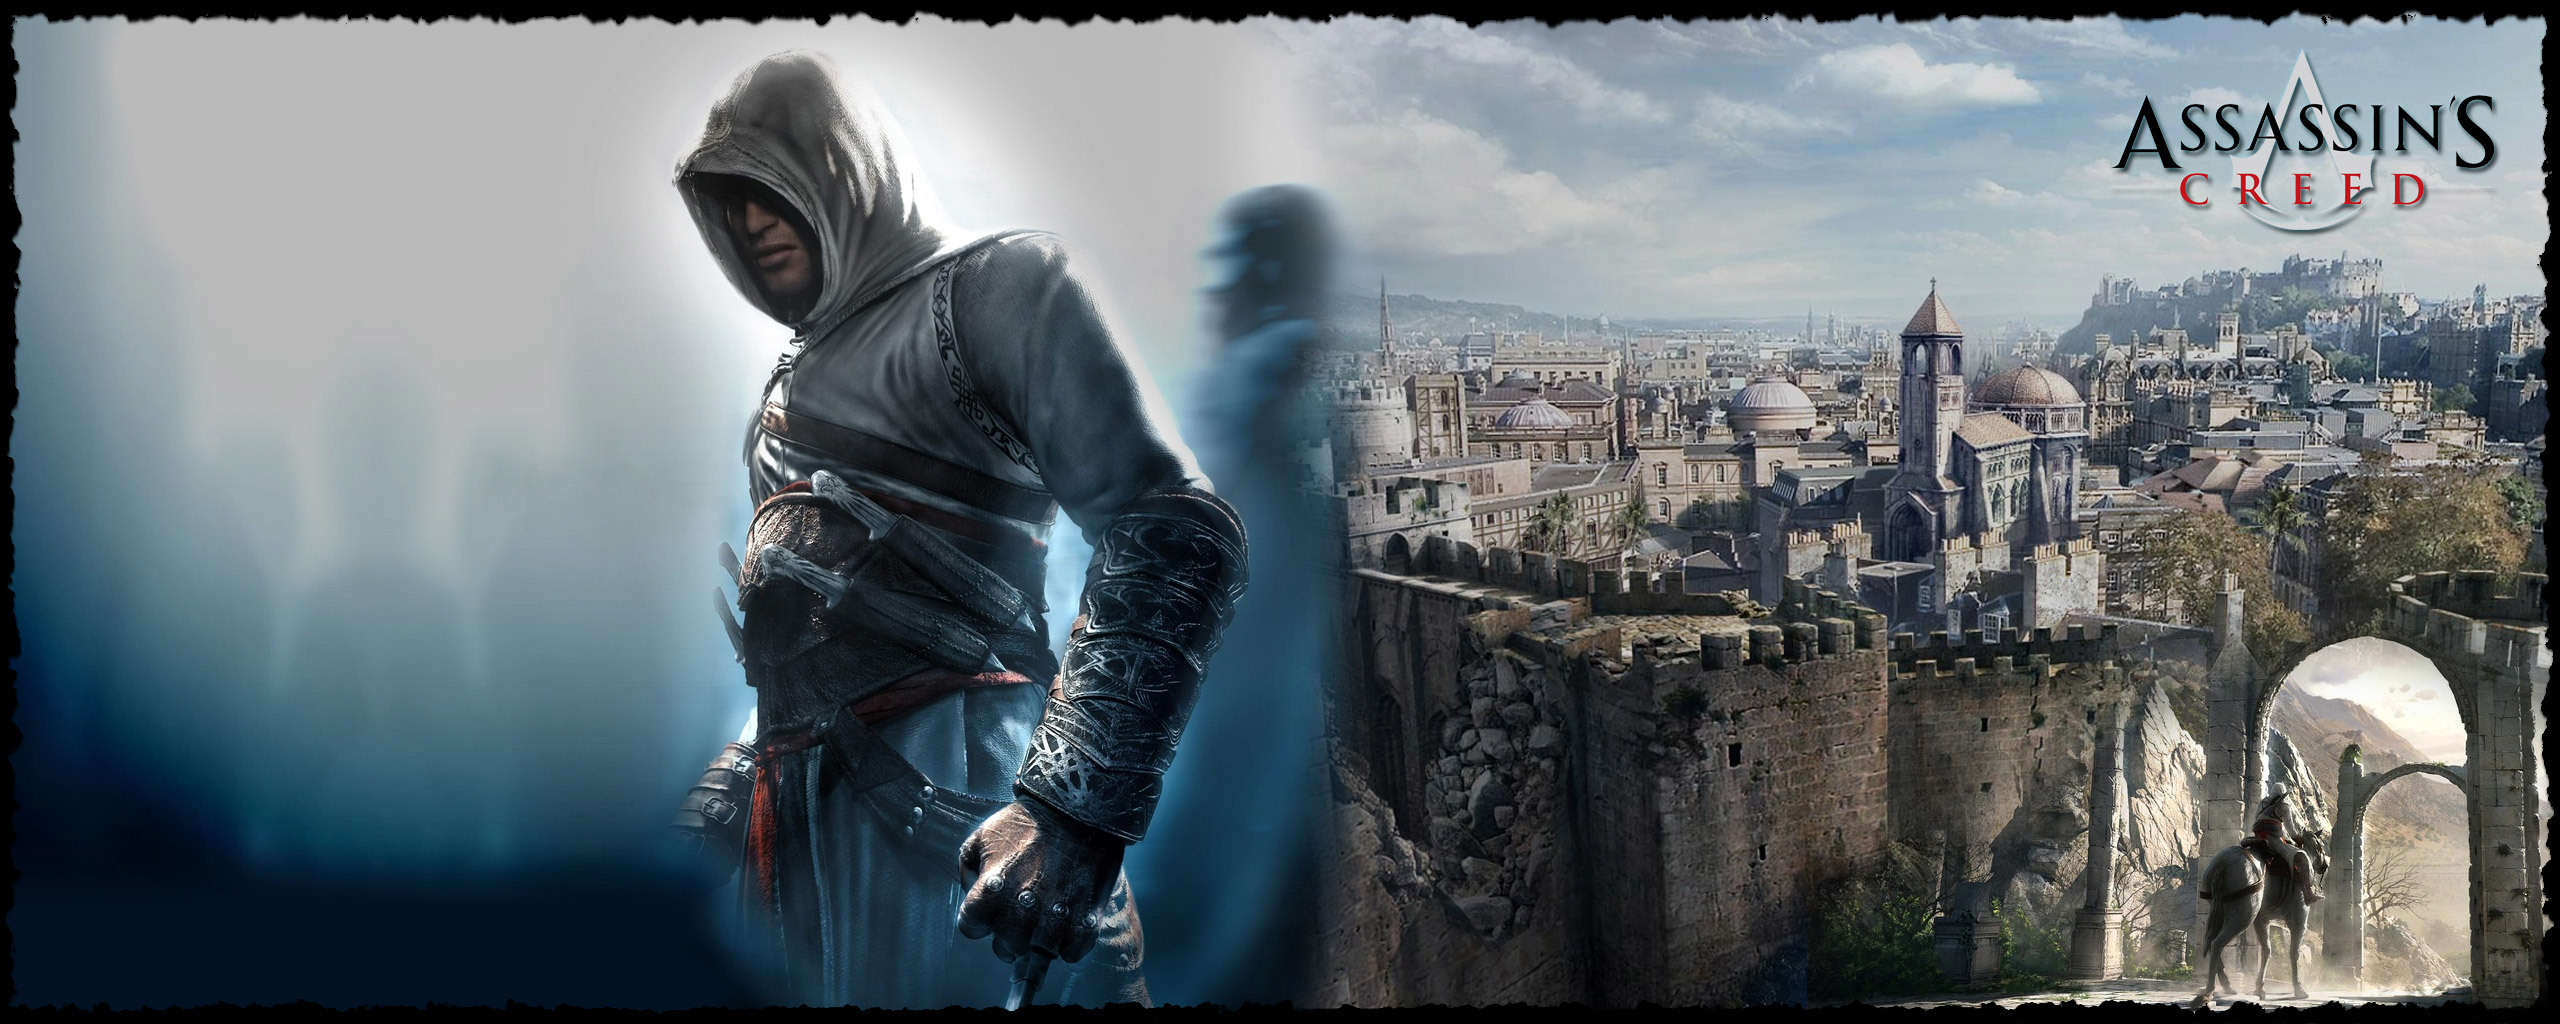 Games assassins creed Altair